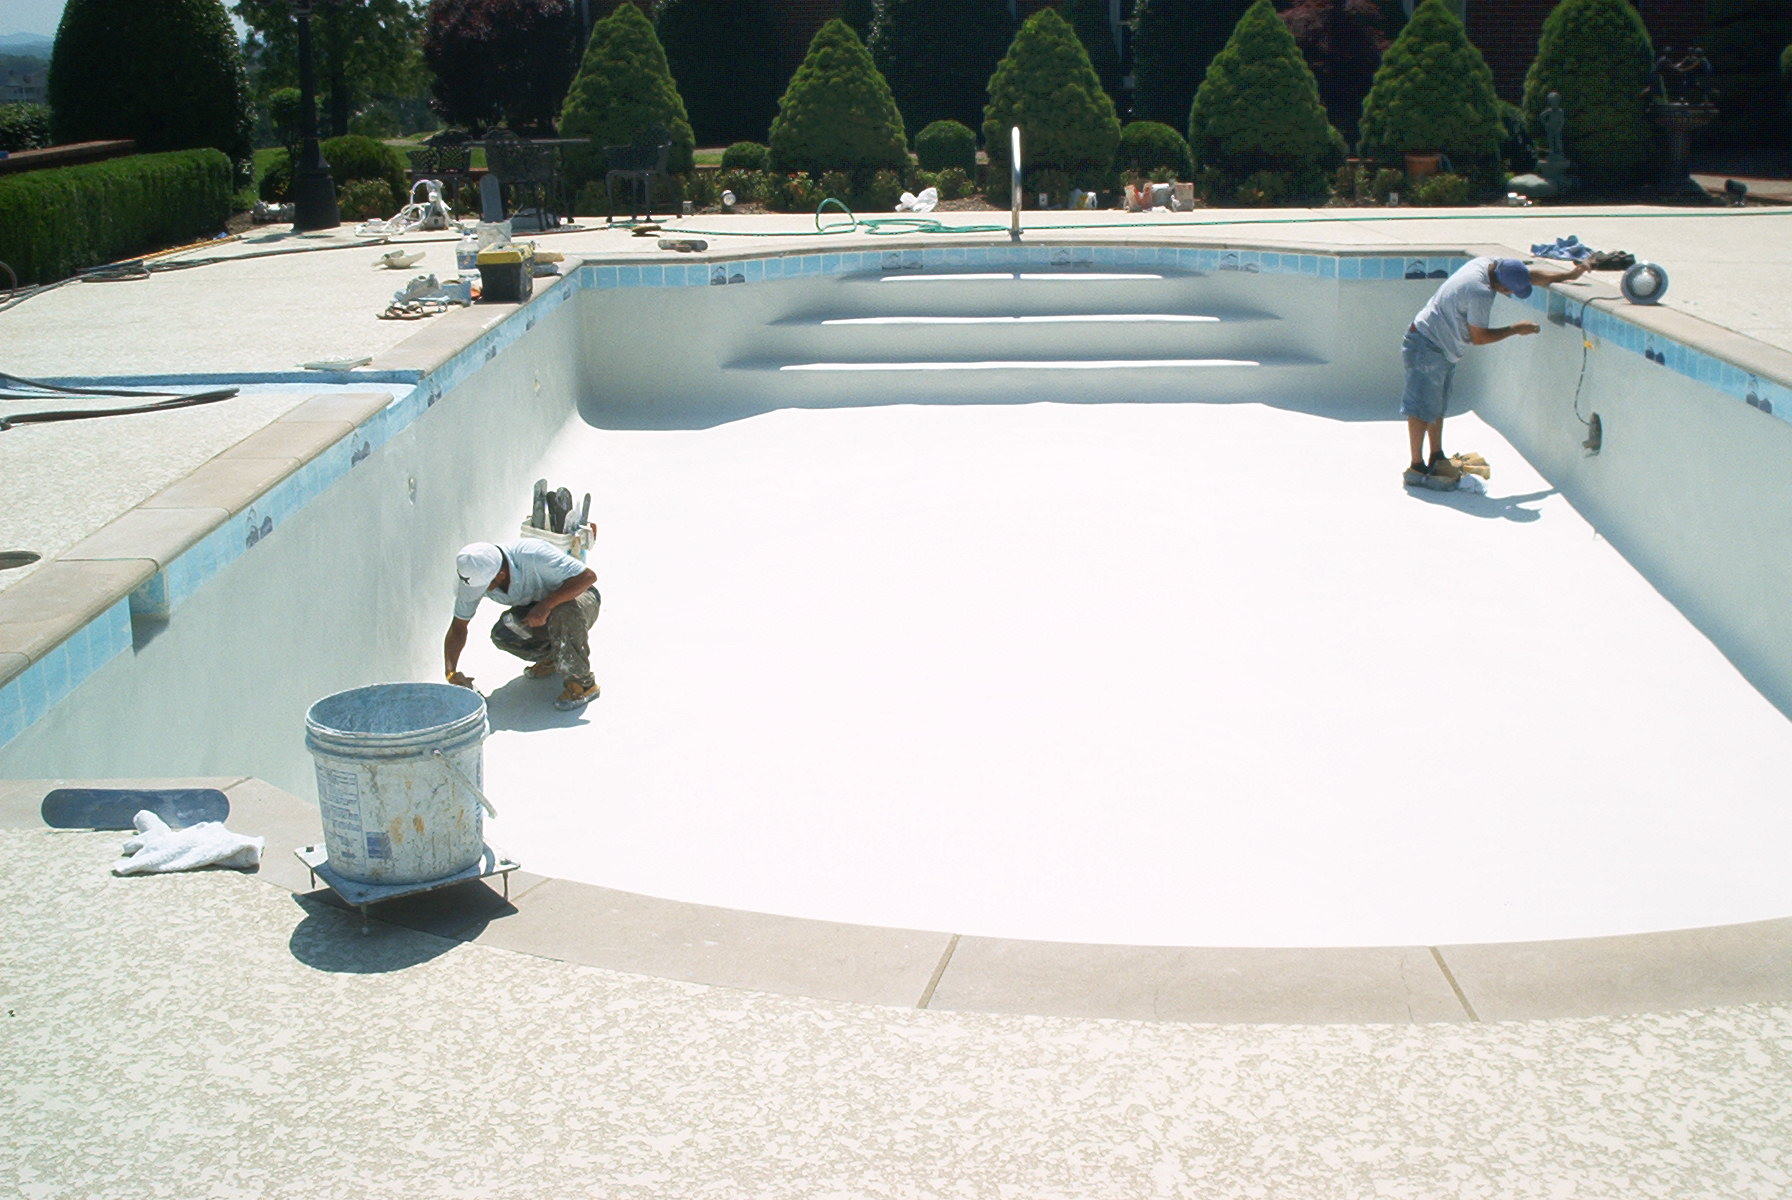 Pool remodel surfaces the pool pros orange county newport beach pool service contractor - Witte pool liner ...